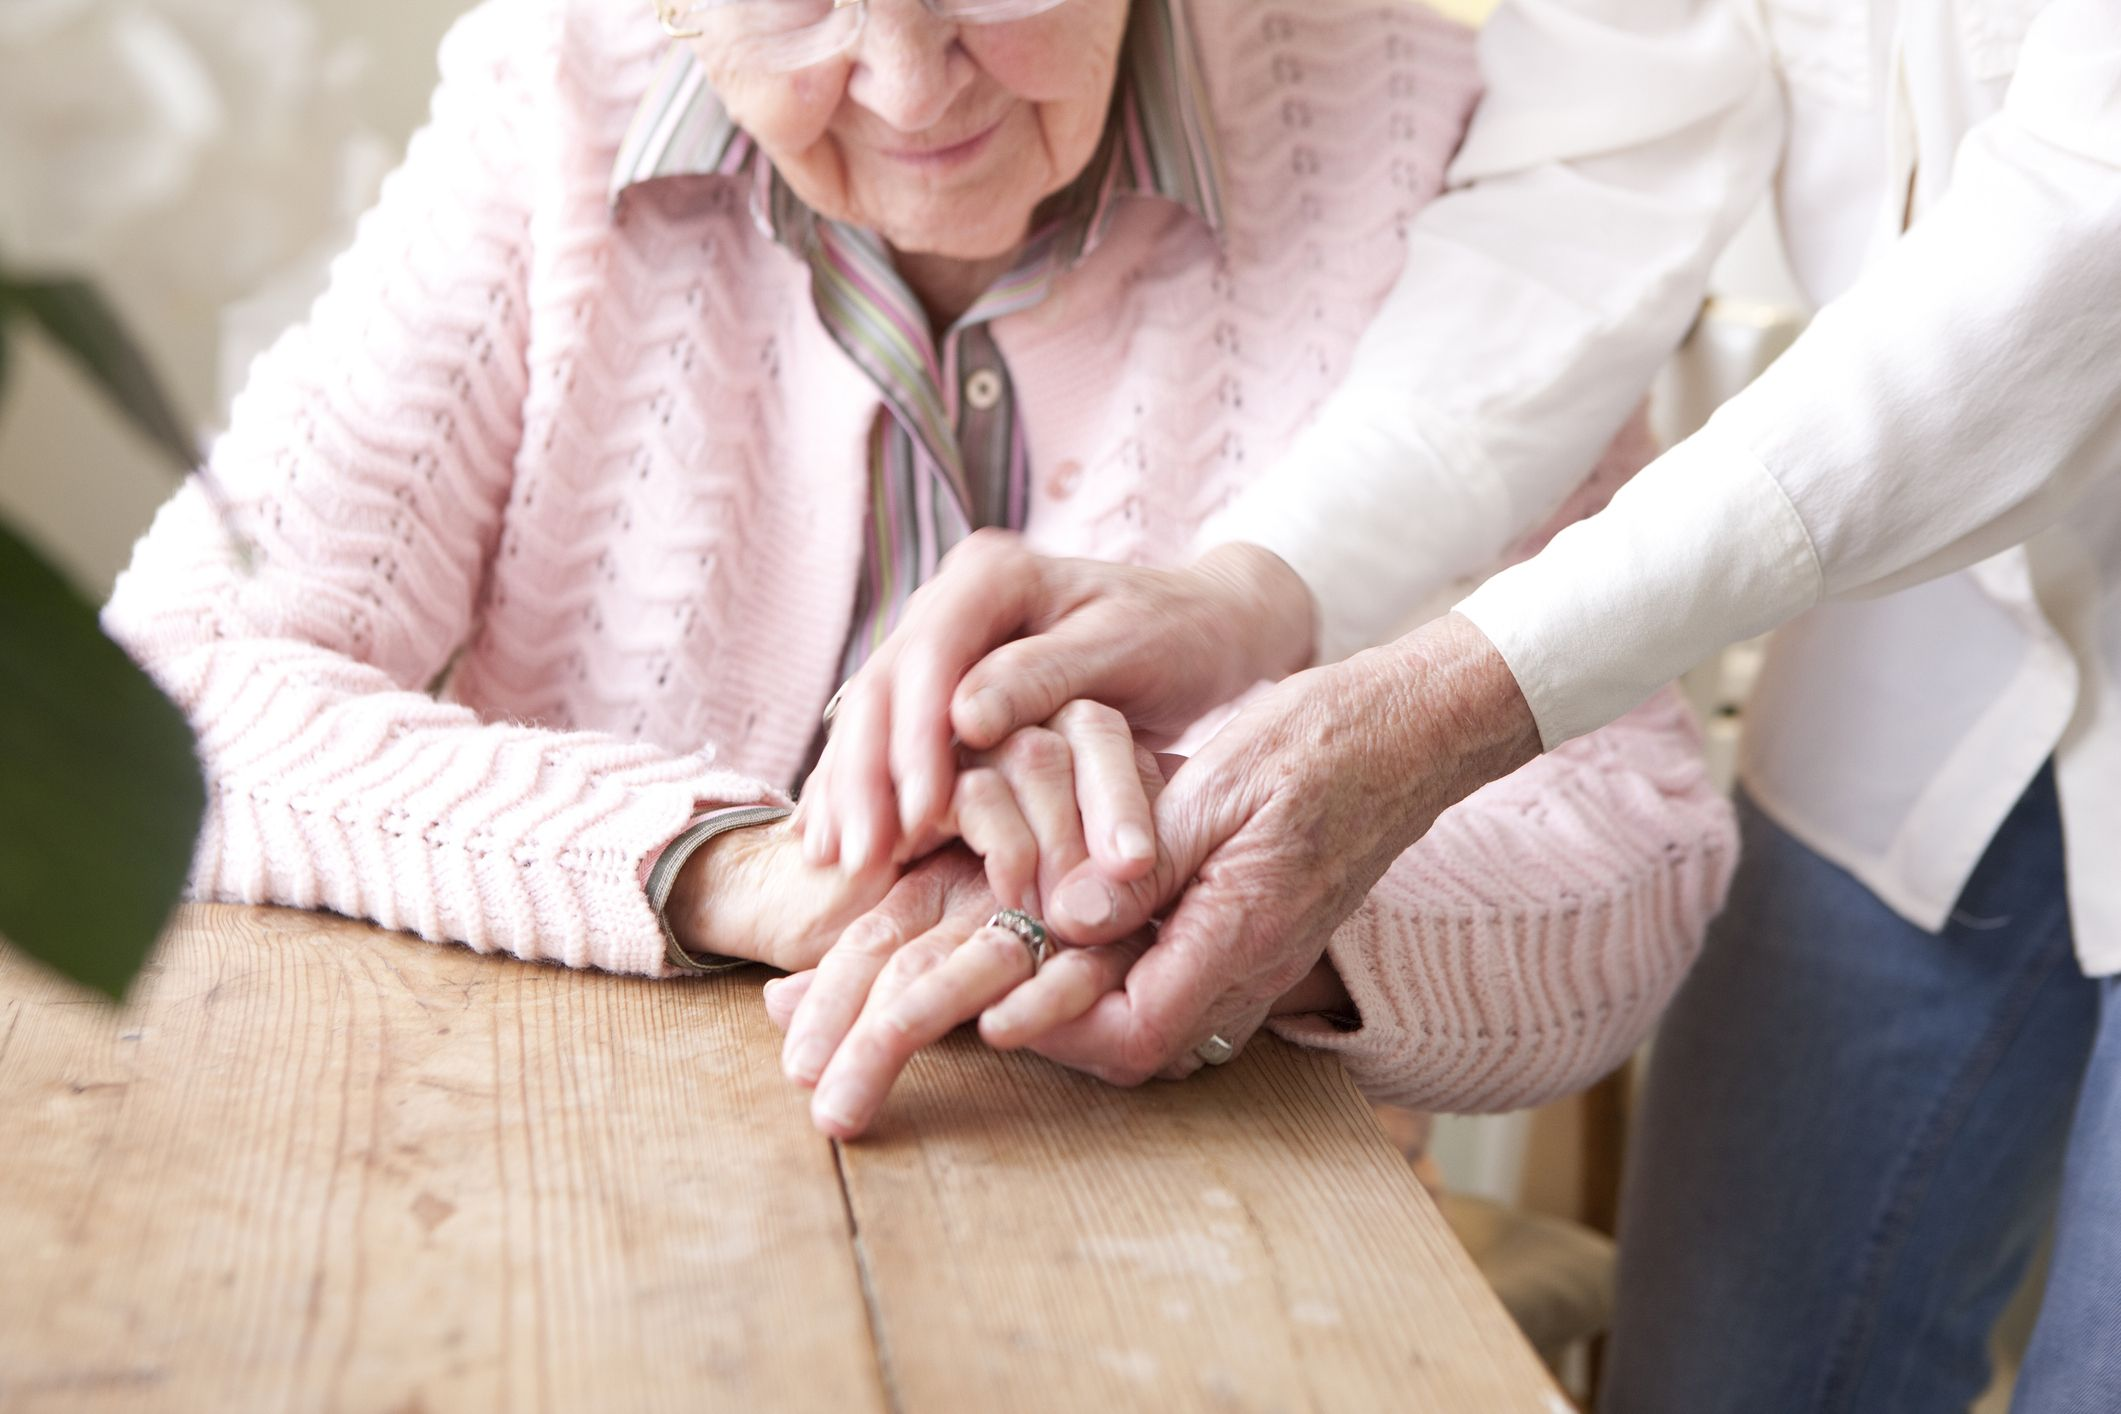 My Mother Was the Ultimate Caregiver. Now I Take Care of Her